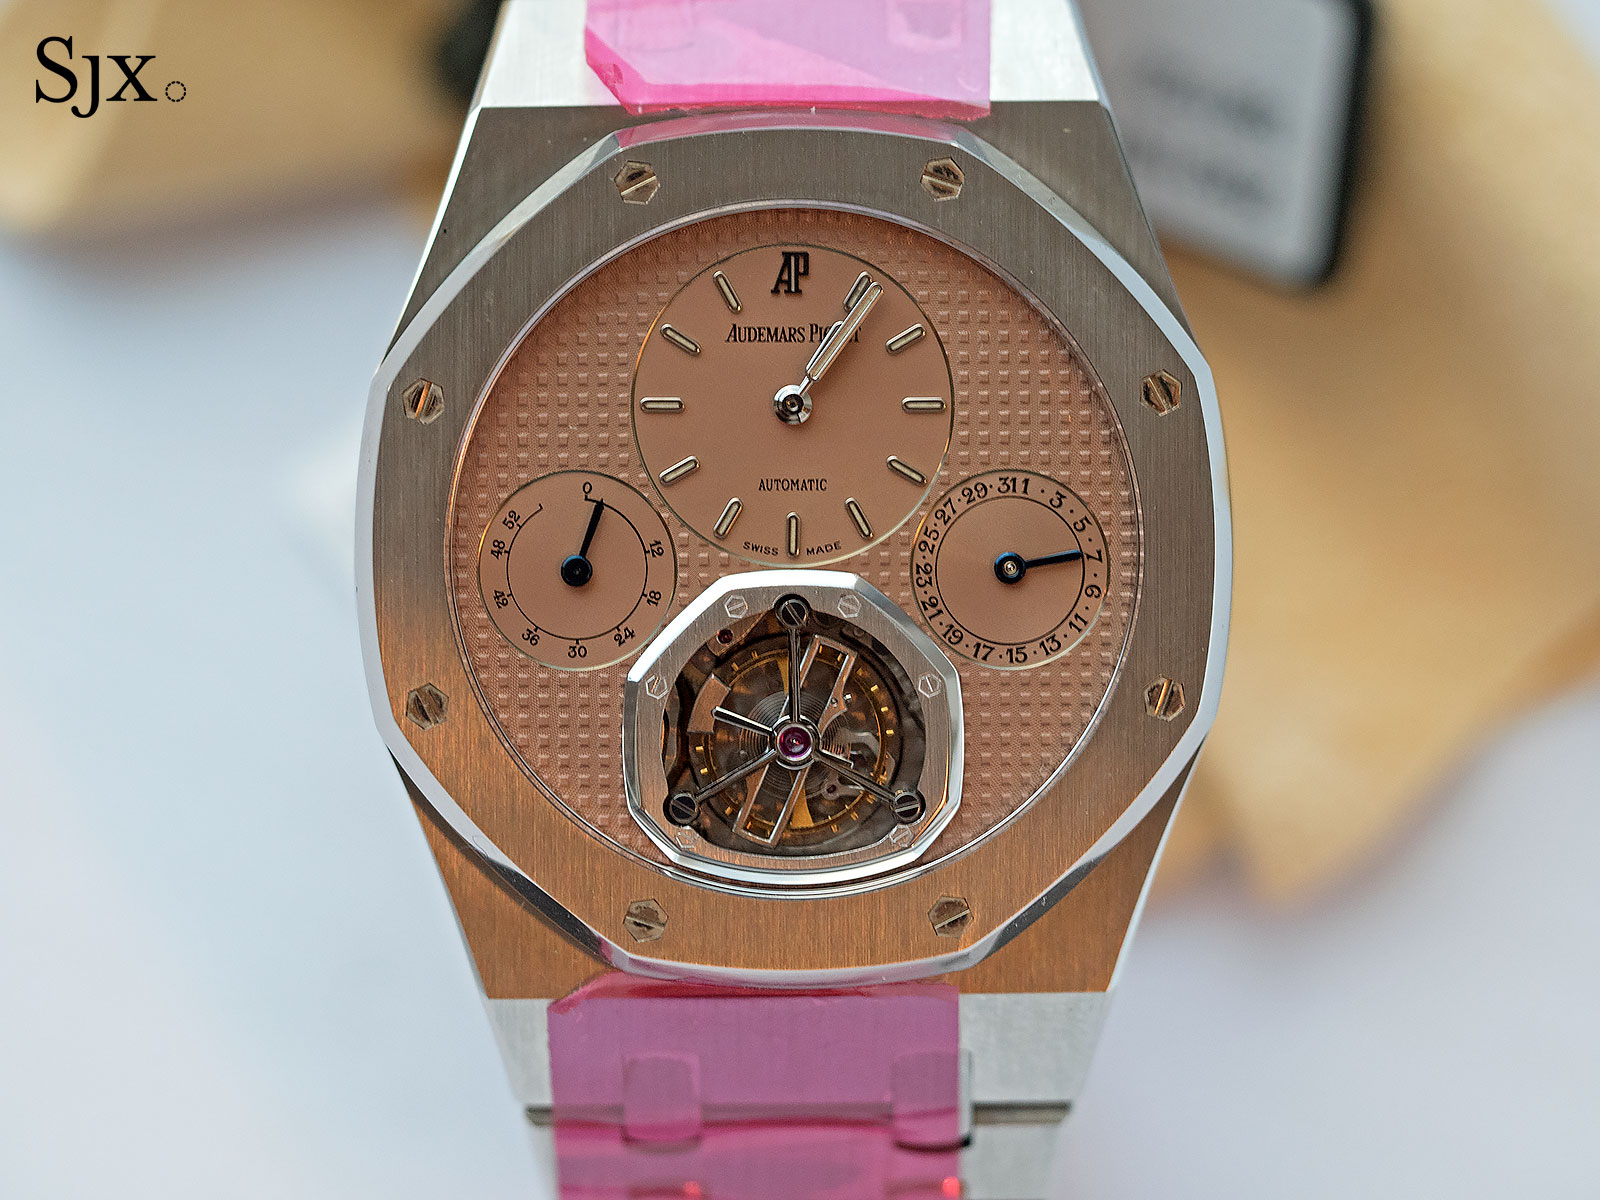 Audemars Piguet Royal Oak Tourbillon 25th ann. 1